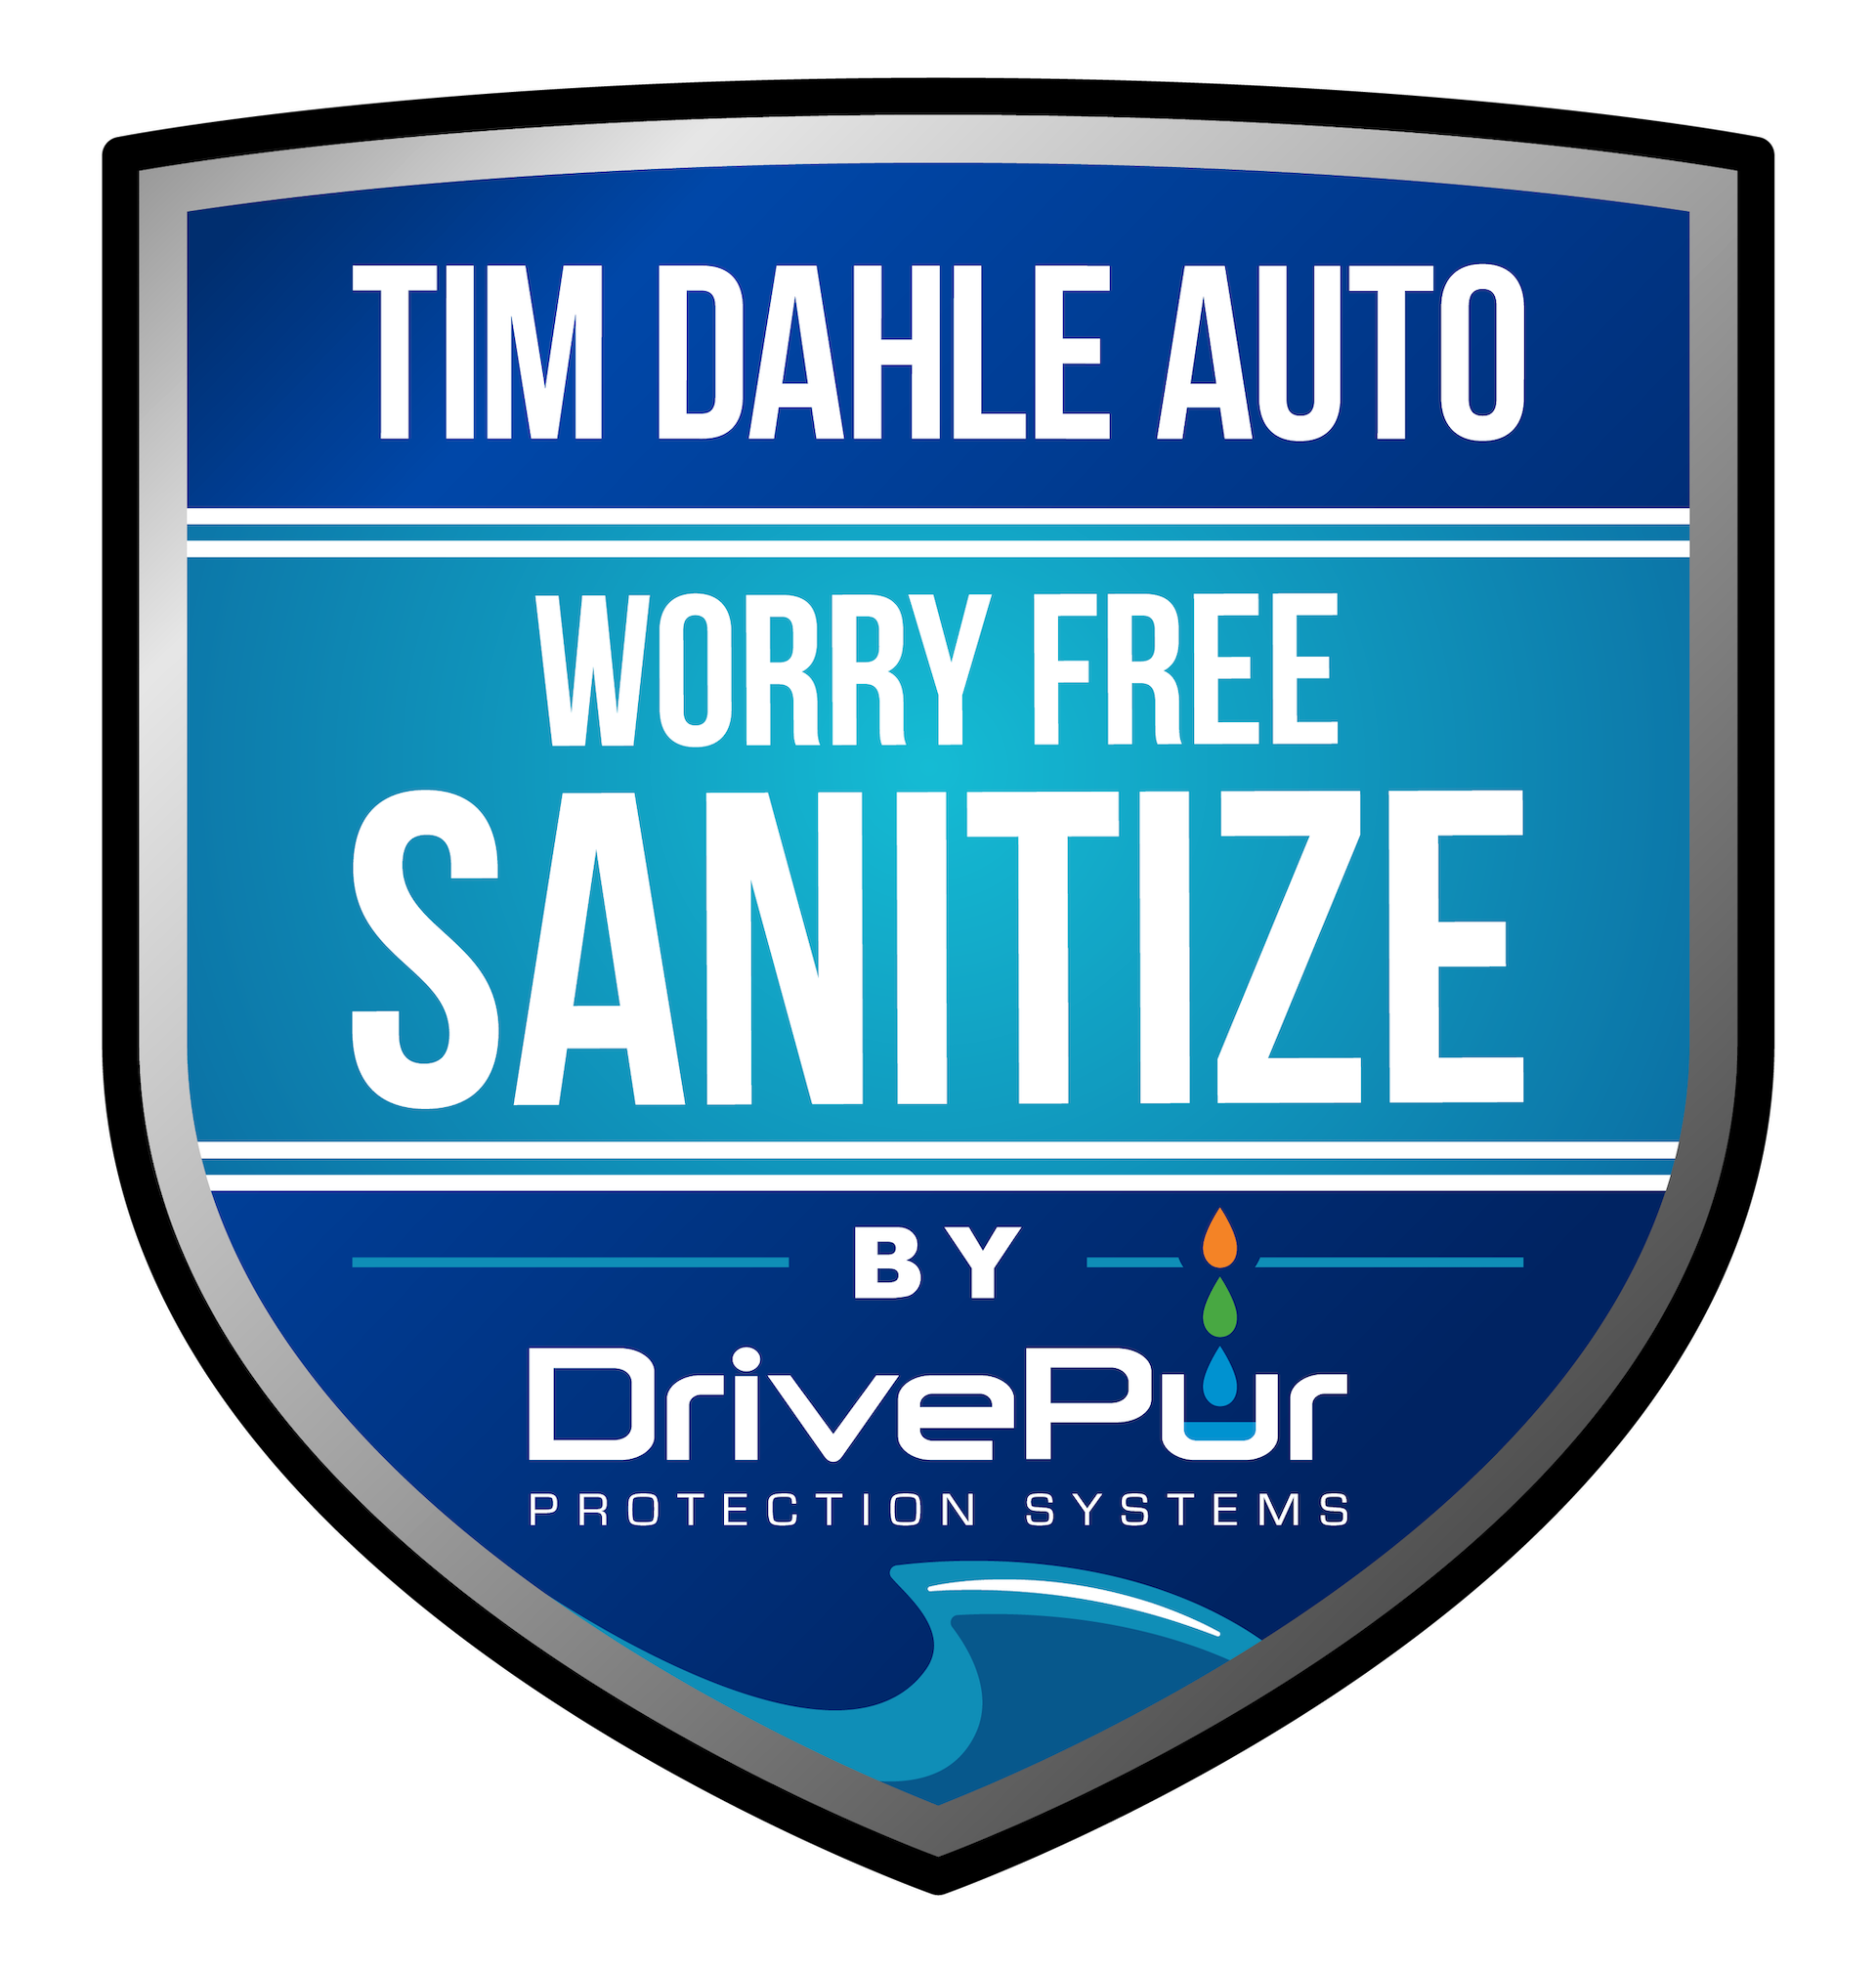 Tim Dahle Ford Worry Free Sanitize